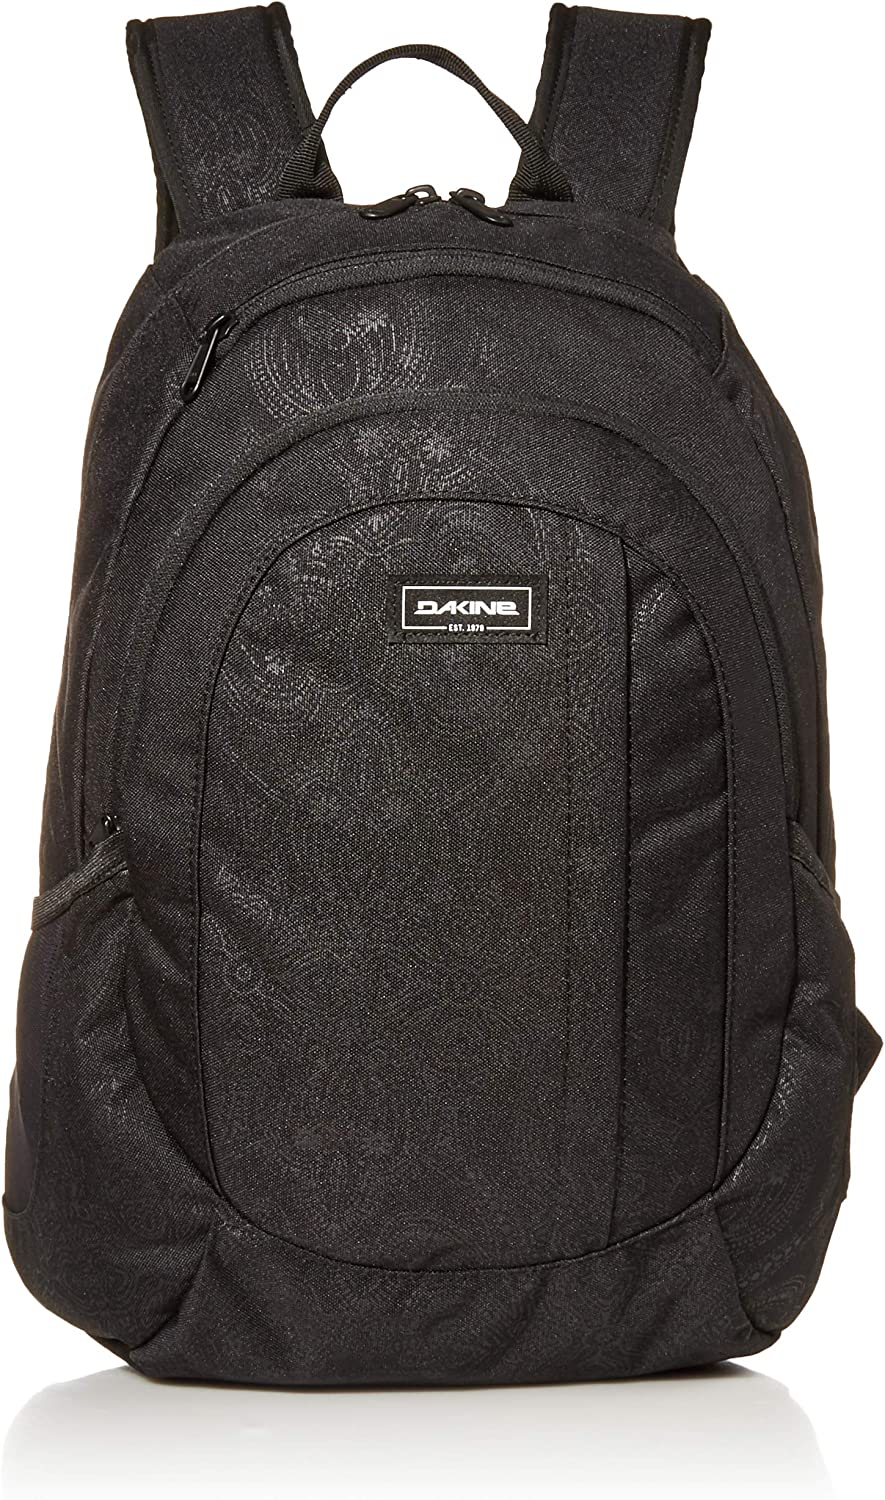 Dakine womens Garden Backpack 20l